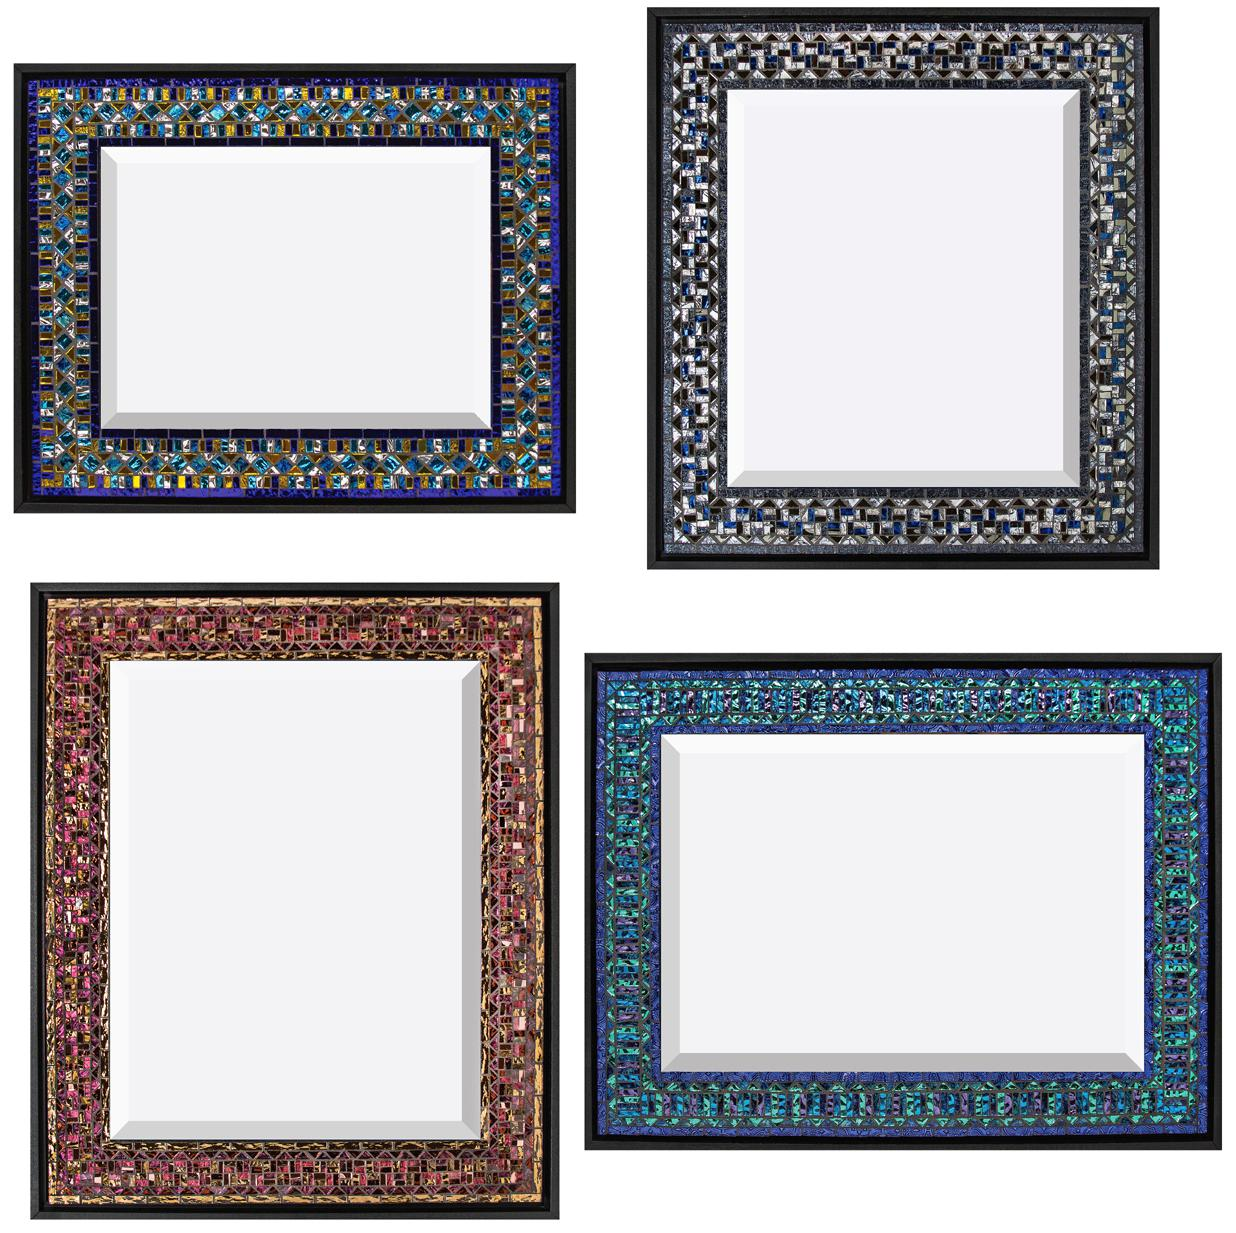 "Clockwise from top:  Blue, Yellow, Turquoise  14"" x 17.5;  Grays with Blue  18"" x 16"";  Blue, Purple, Aqua  16"" x 21"";  Red, Rose, Bronze  21"" x 17"". Van Gogh and mirror glass."